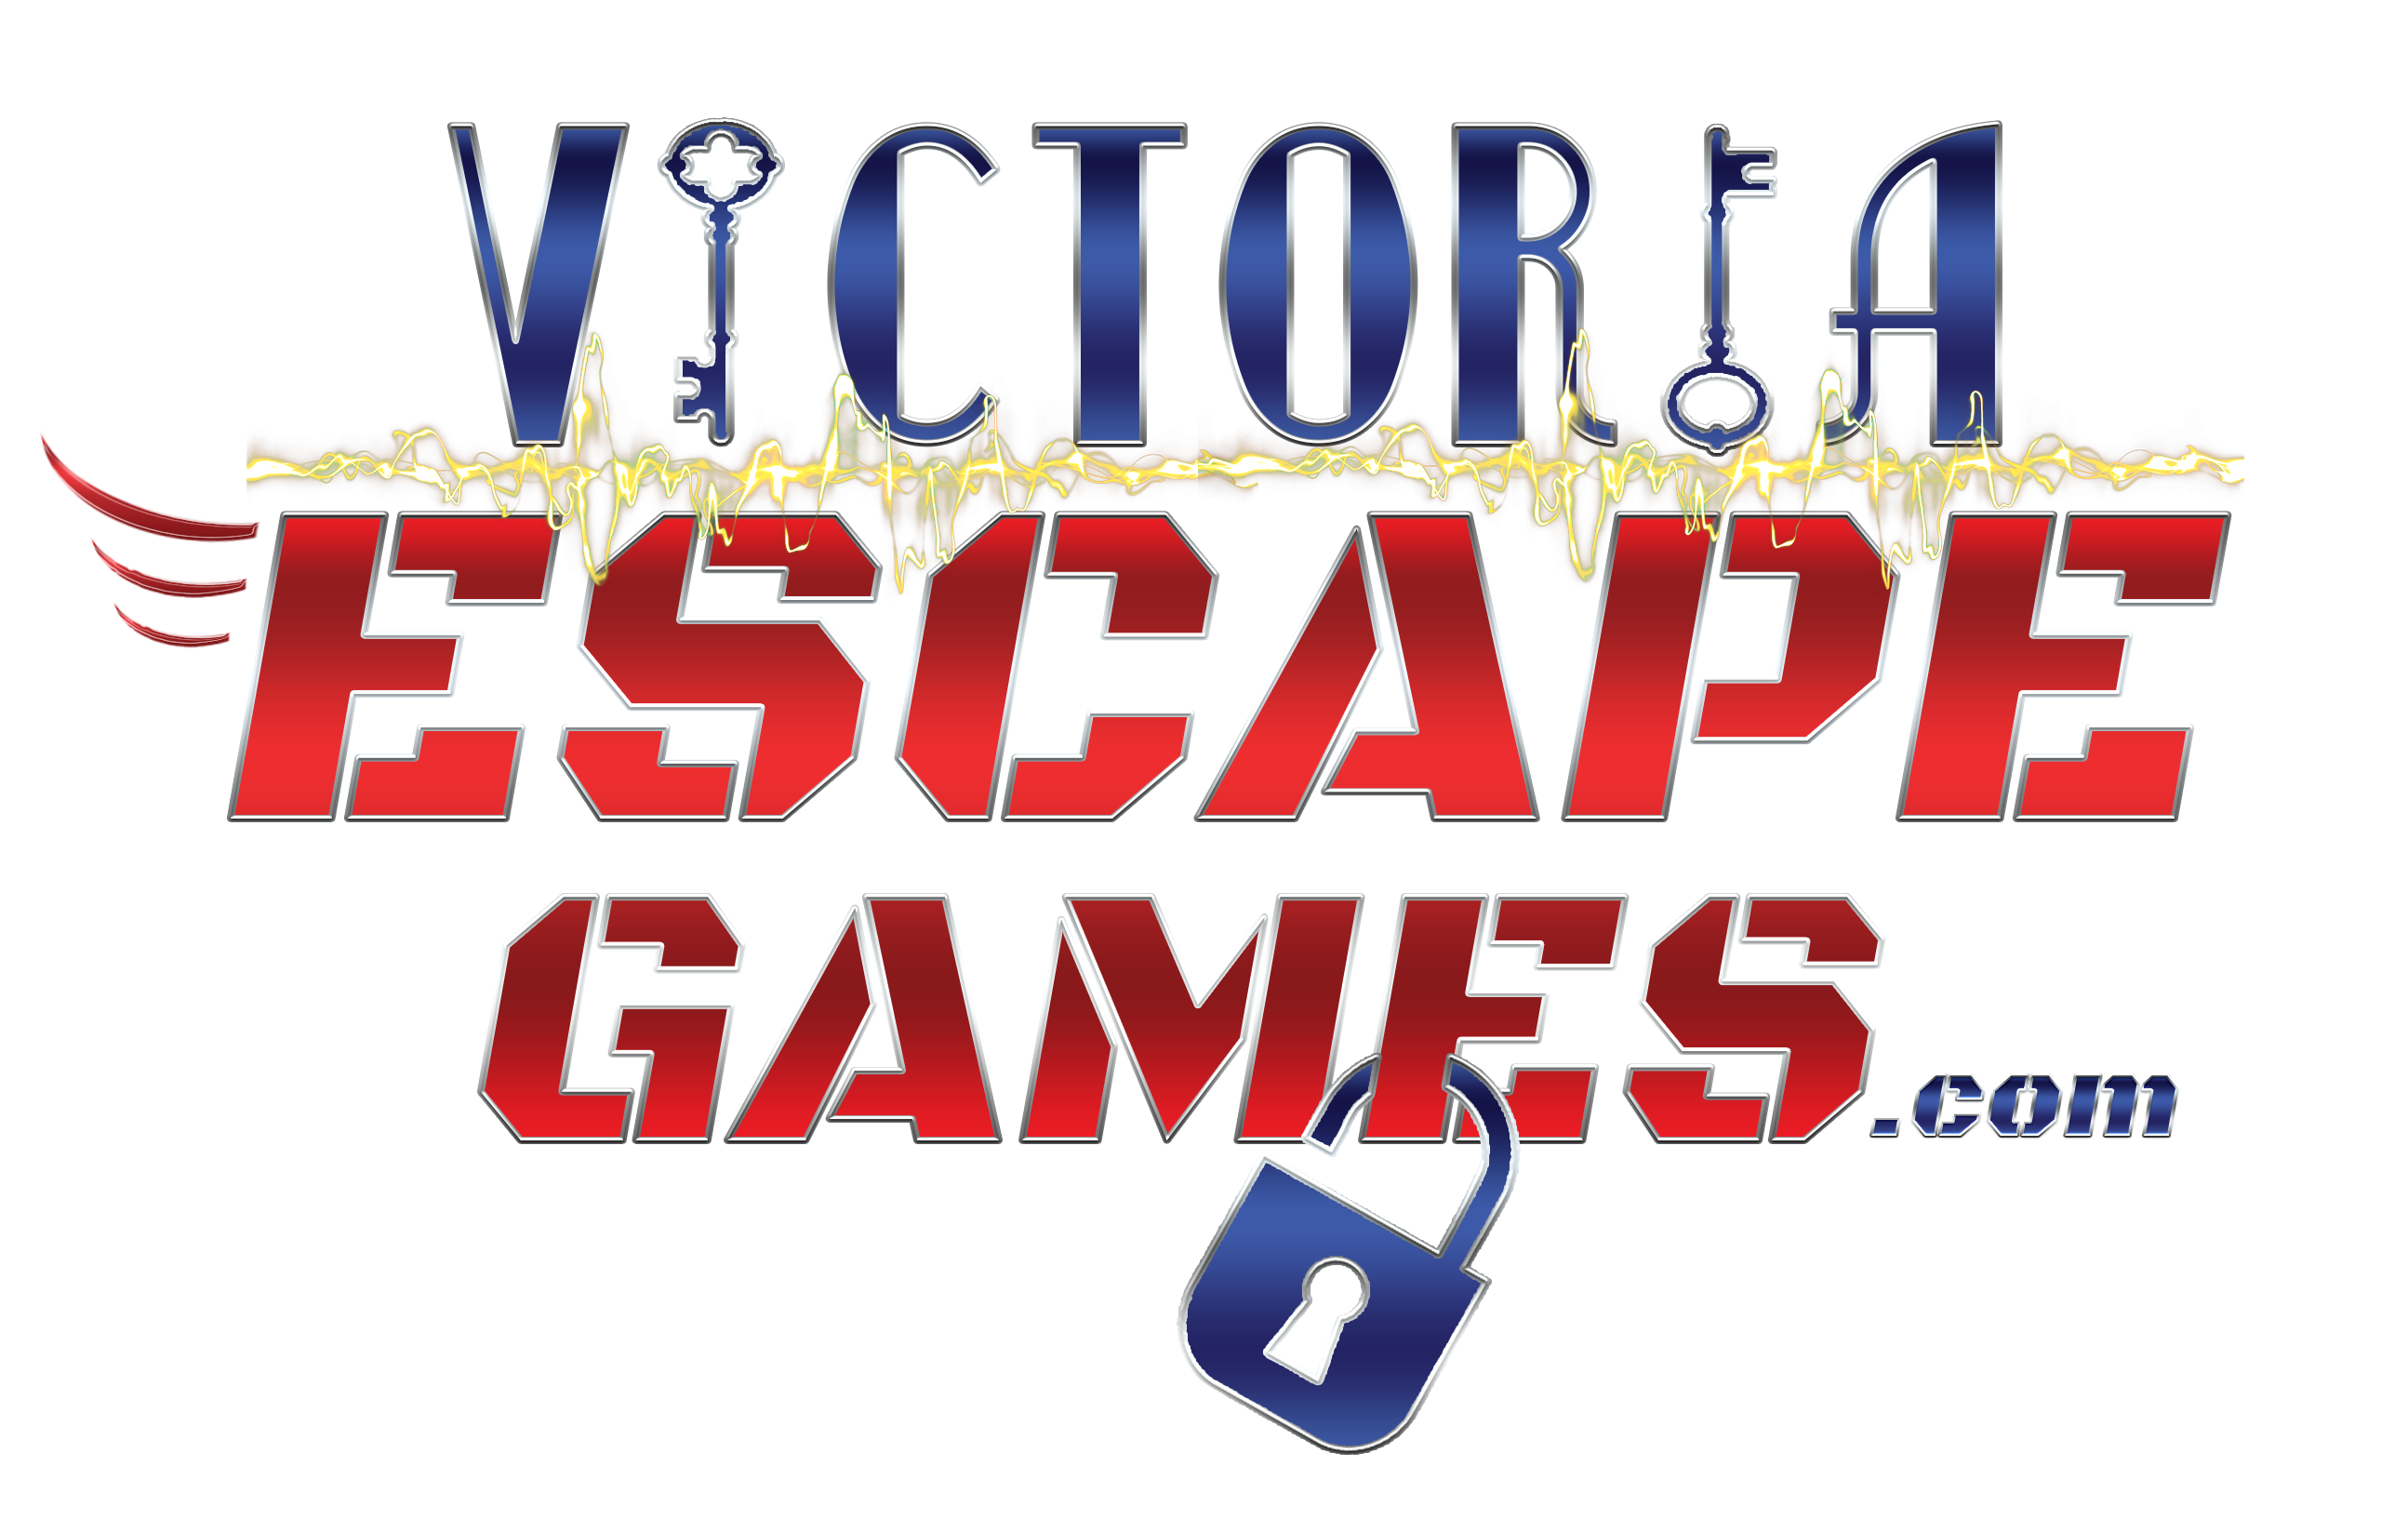 Victoria Escape Games